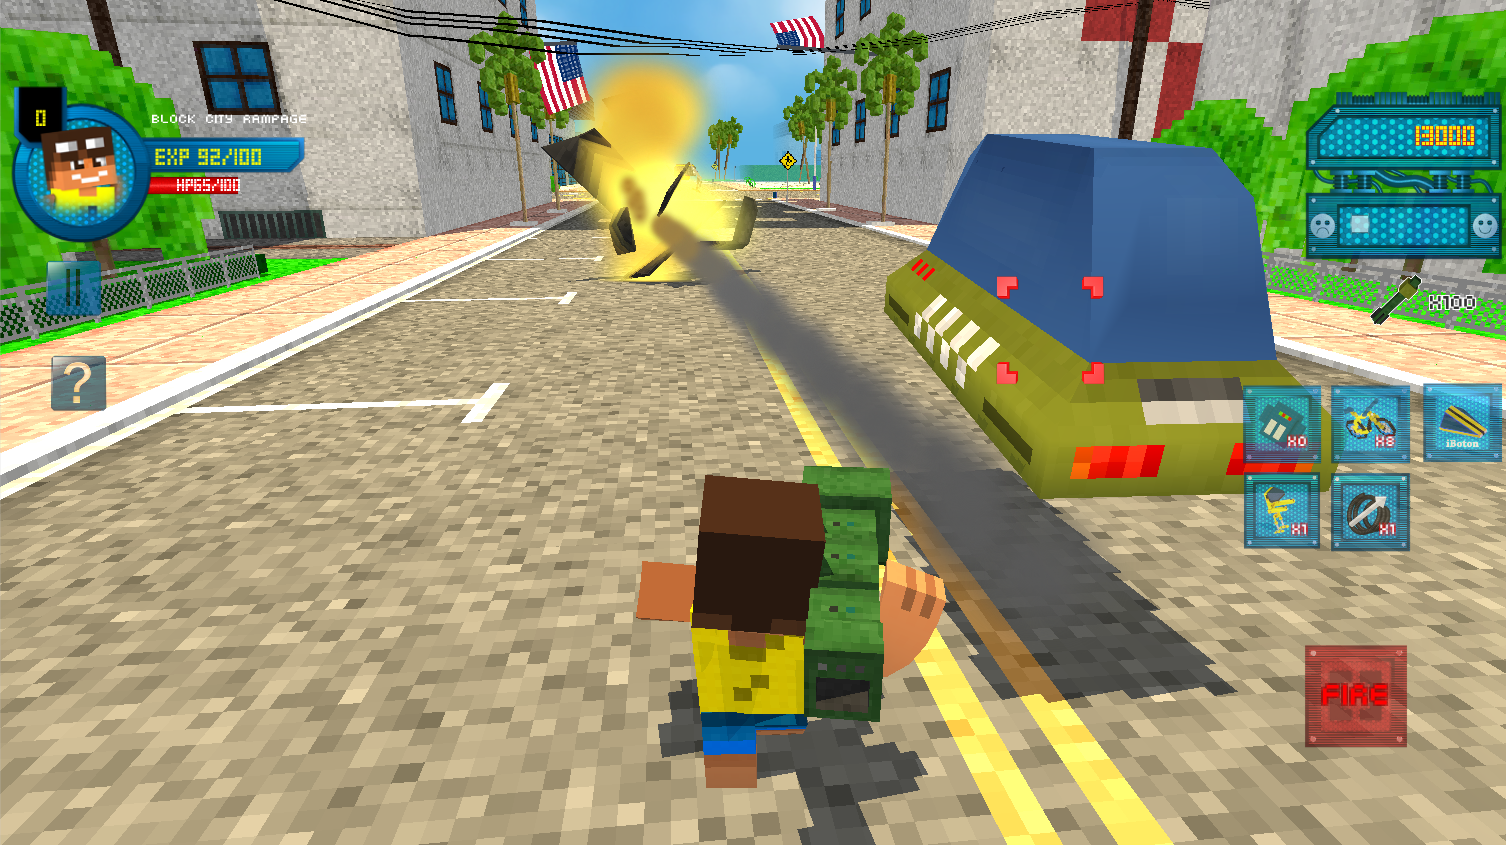 Block City Rampage Screenshot 13